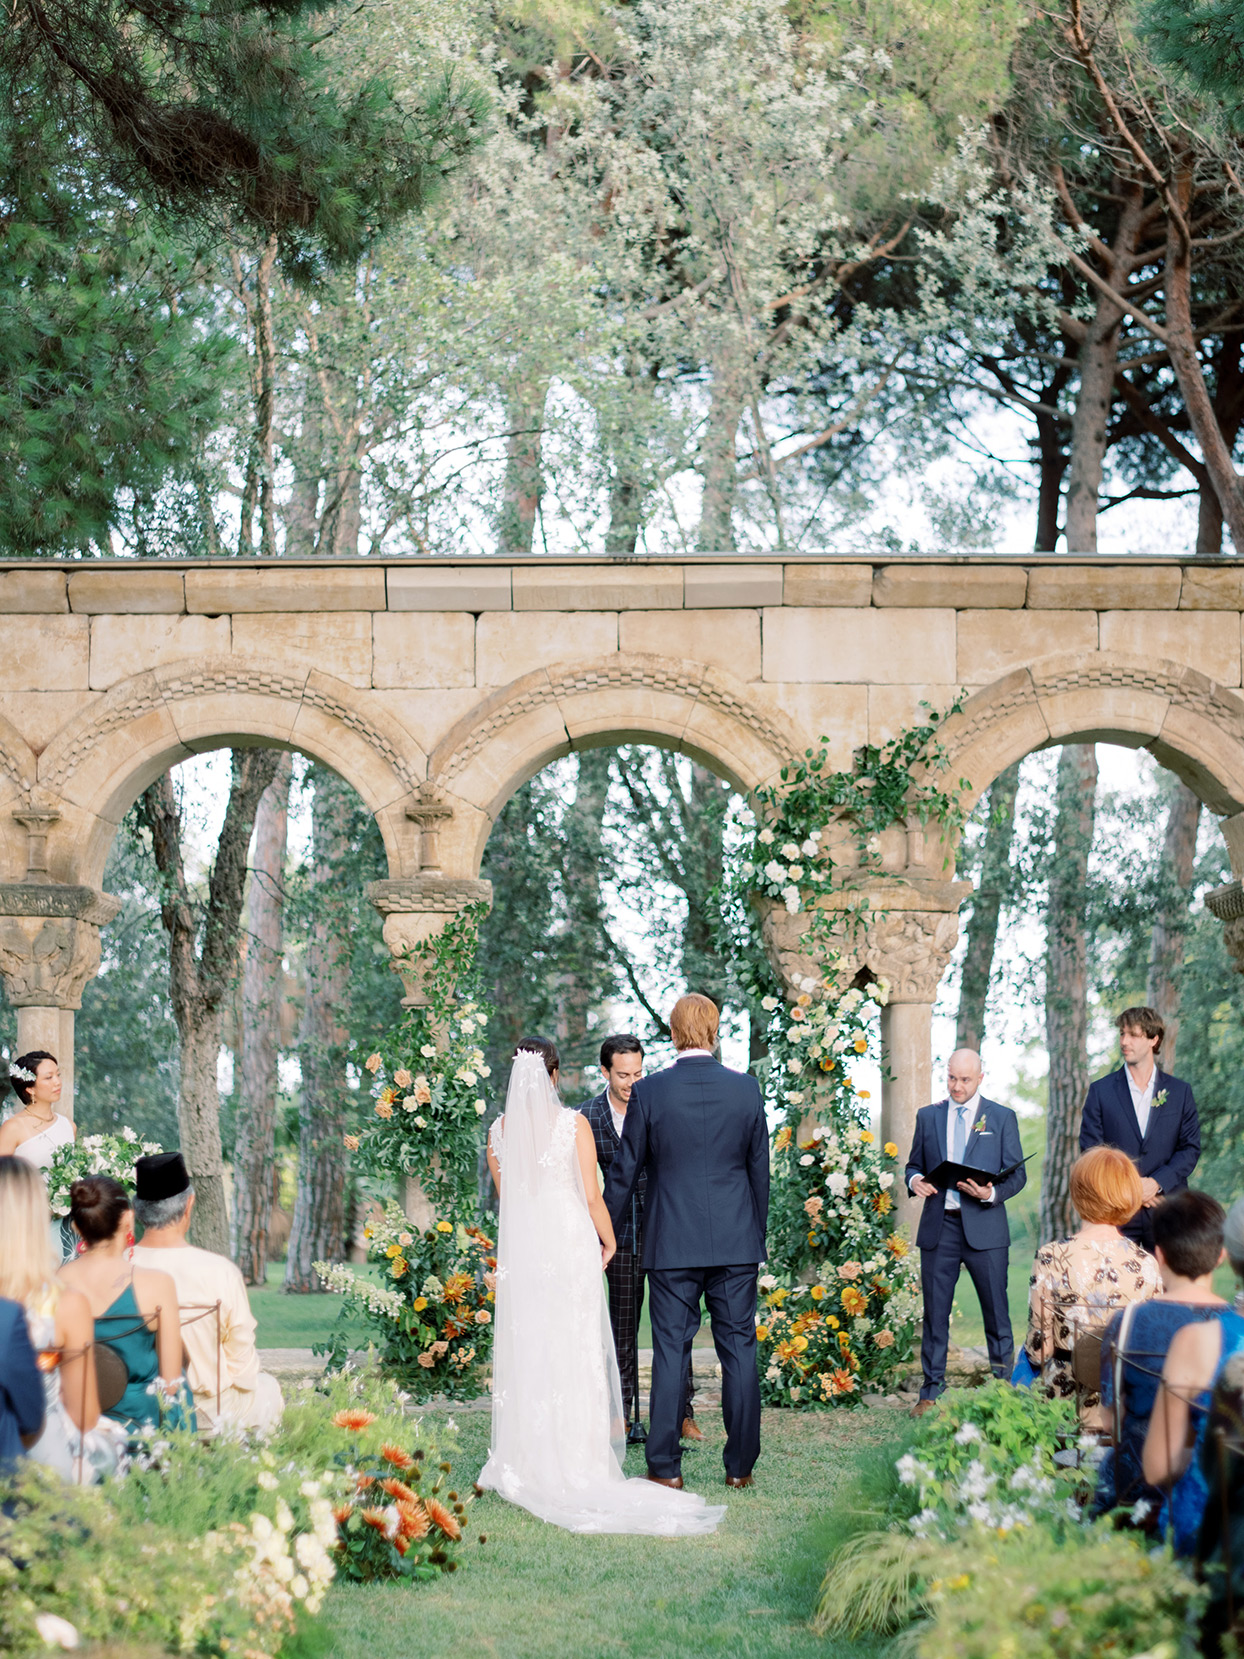 alyssa macia wedding ceremony under roman ruins